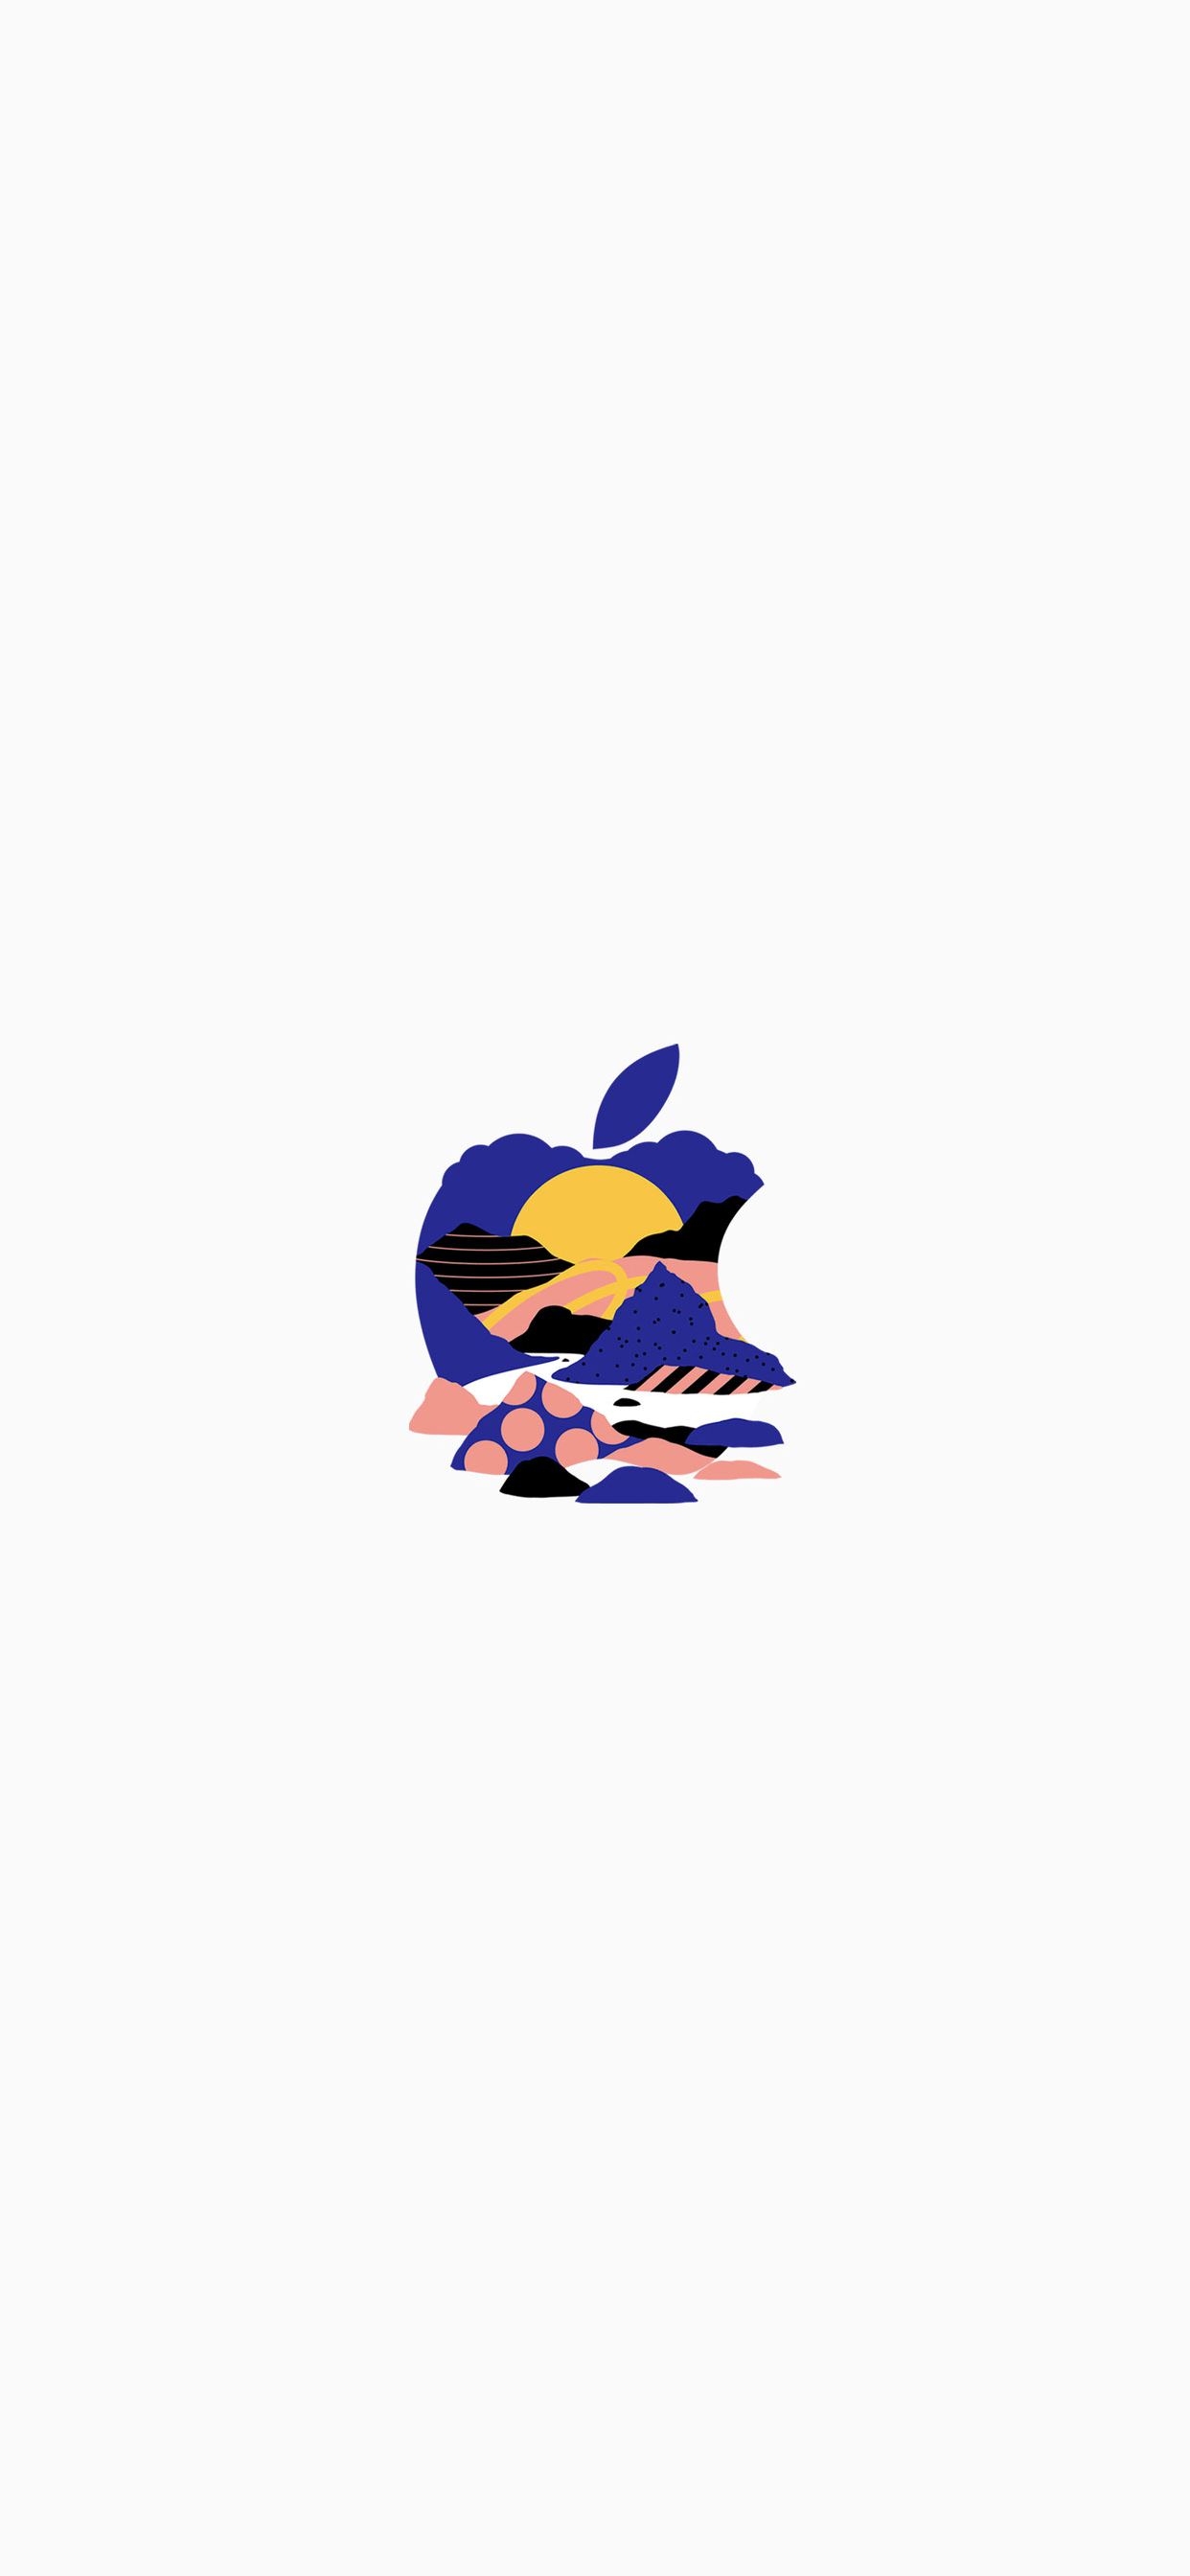 7 Apple logo